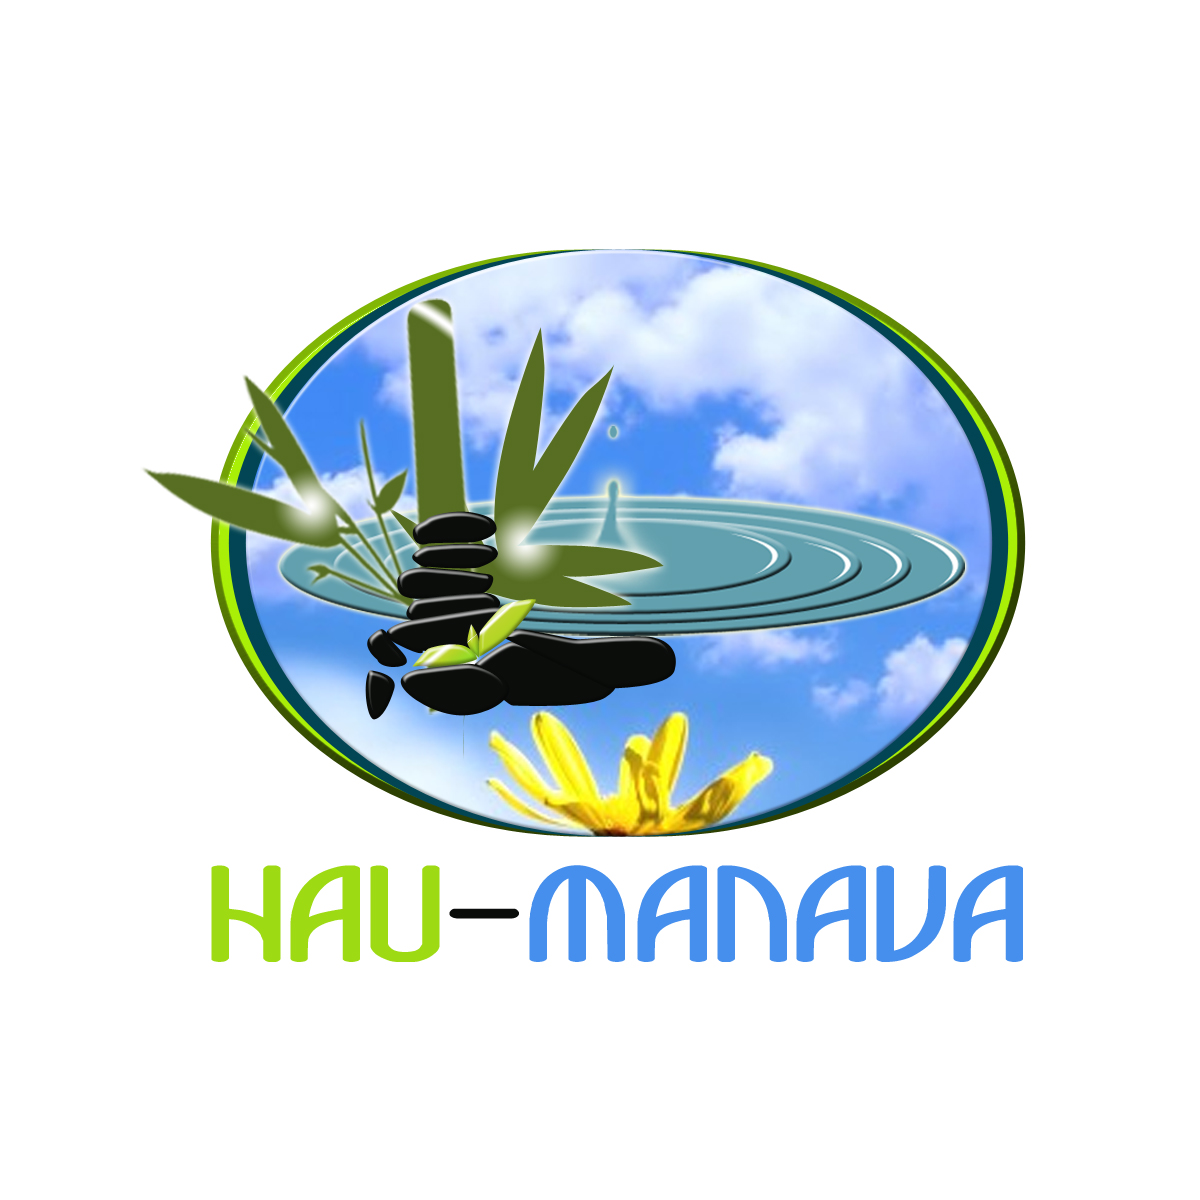 Logo Design by Jo Cres Jao - Entry No. 31 in the Logo Design Contest Hau-Manava Logo Design.